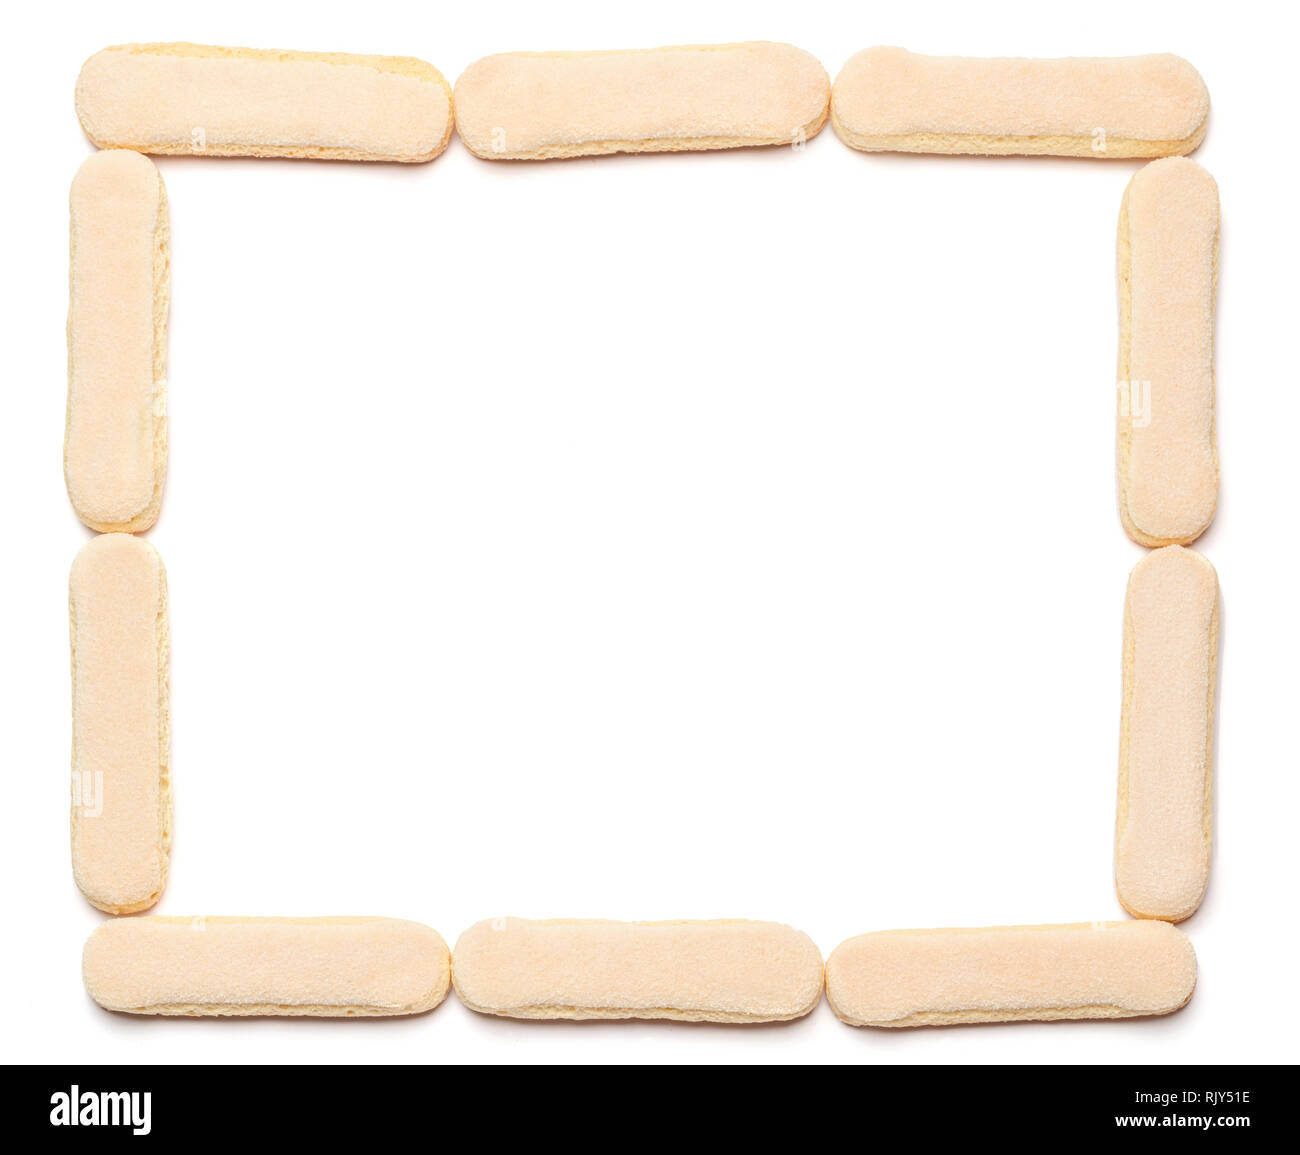 Frame made of savoiardi ladyfinger cookie and cup of coffee - Stock Image